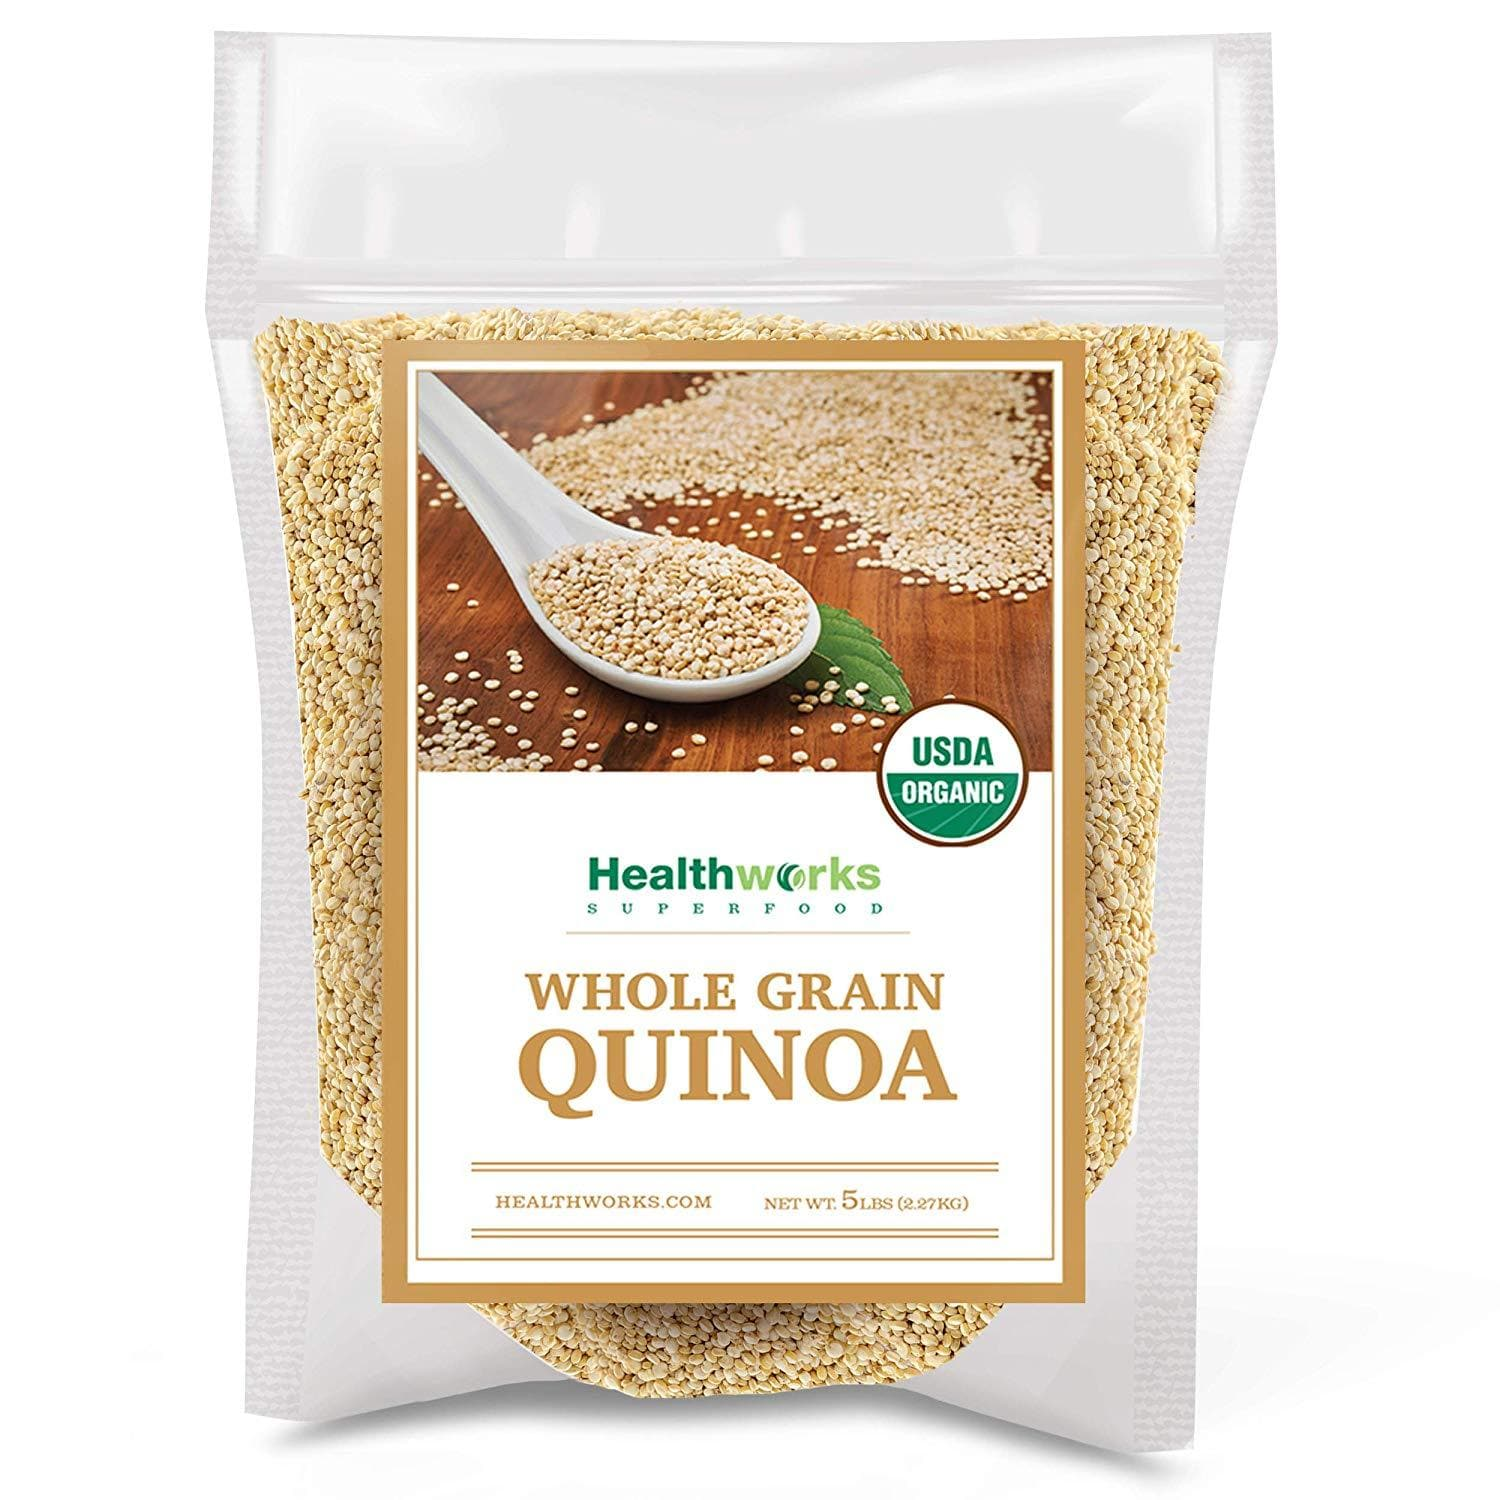 Healthworks Quinoa White Whole Grain Raw Organic, 5lb - Healthworks Superfood Organic